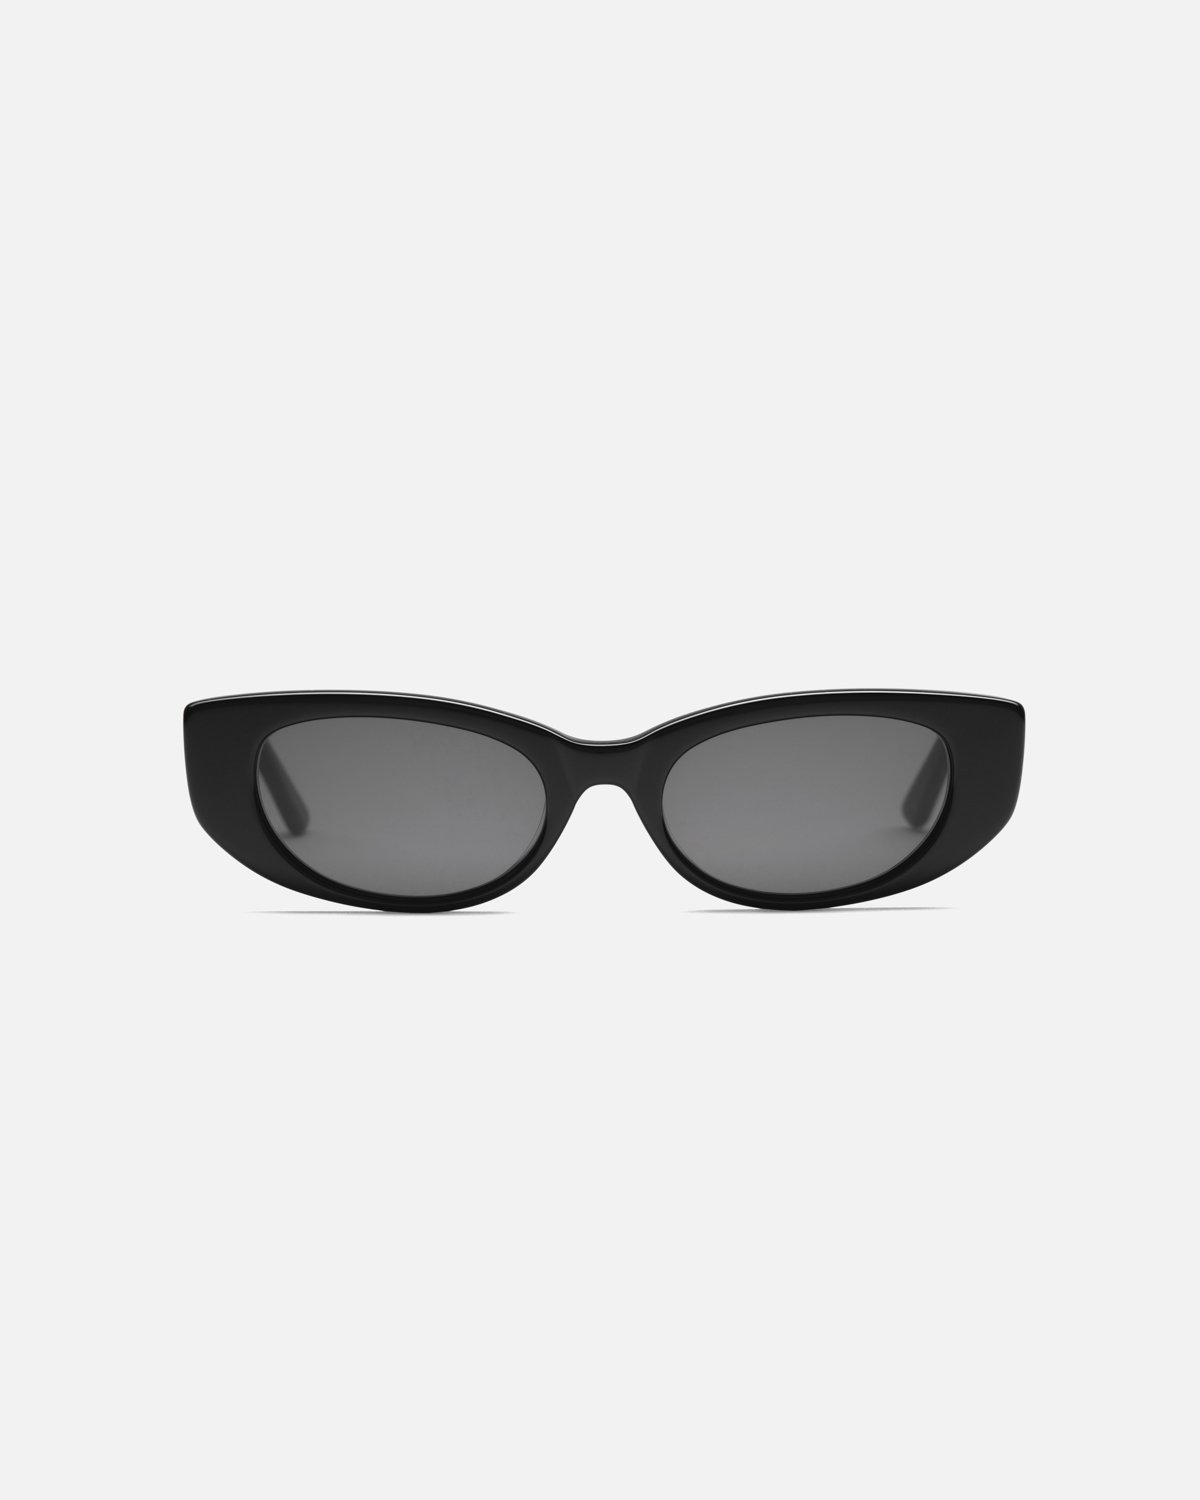 Lotte———  Black by Lu Goldie, available on lugoldie.com for $131 Hailey Baldwin Sunglasses Exact Product